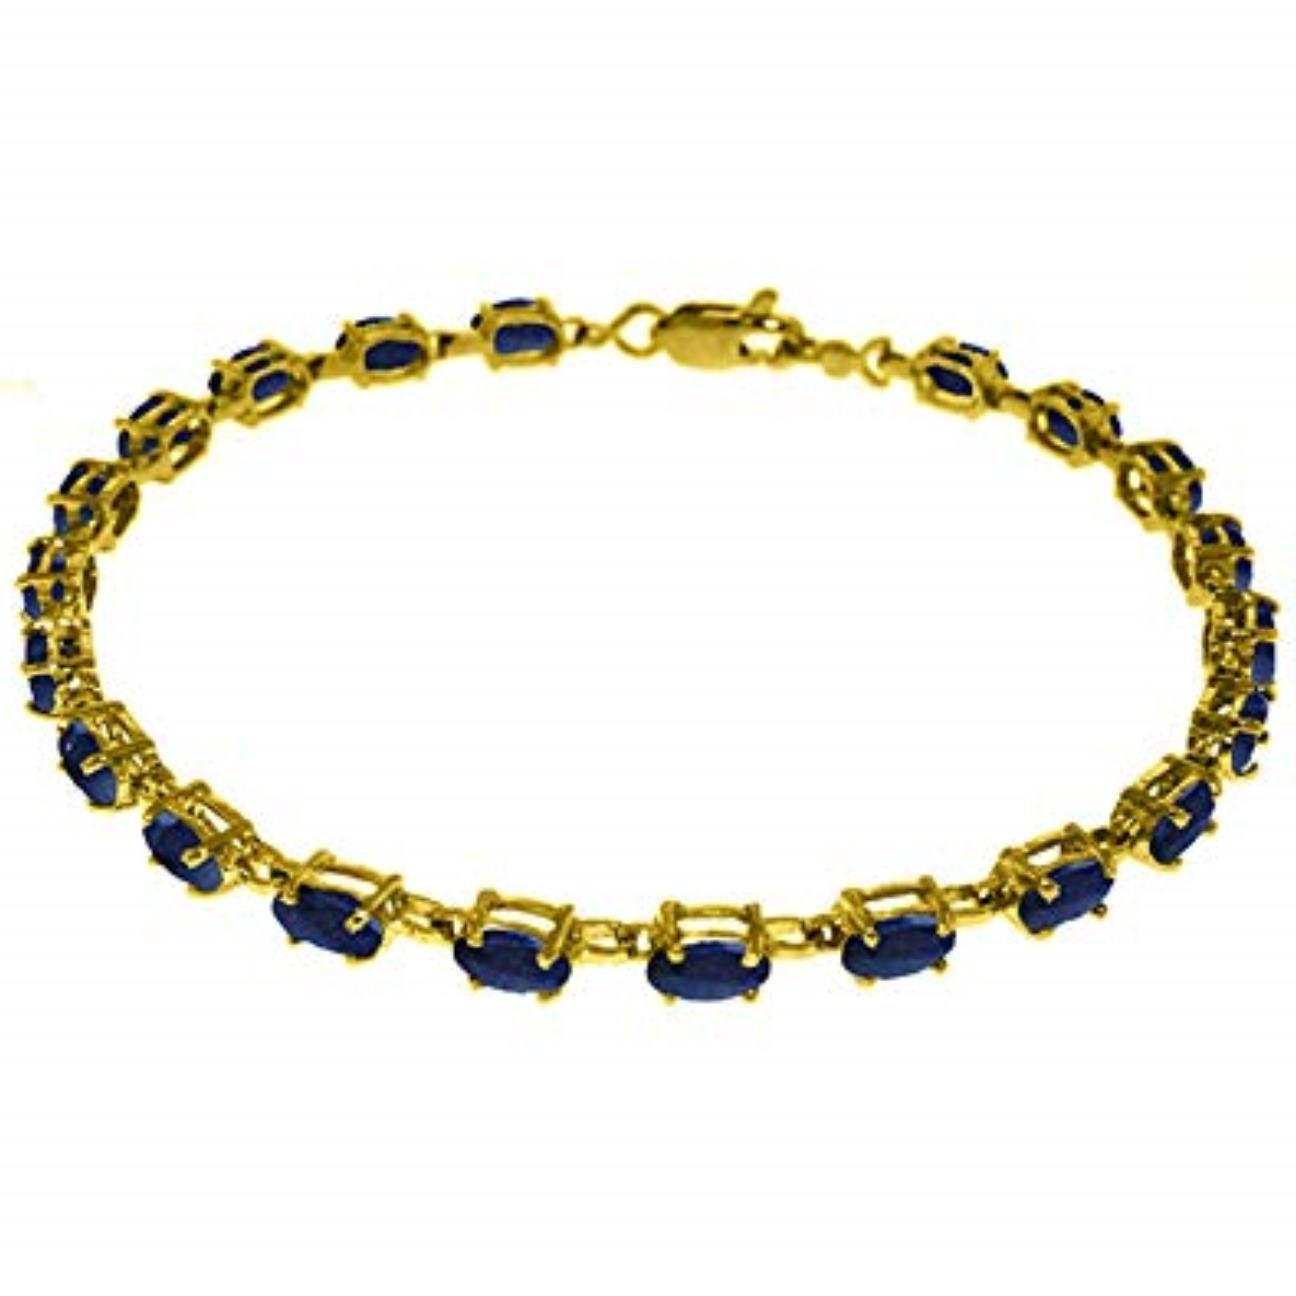 8 Carats Natural Oval Sapphire Gemstone Tennis Bracelet 14K Solid Yellow Gold 3561-Y